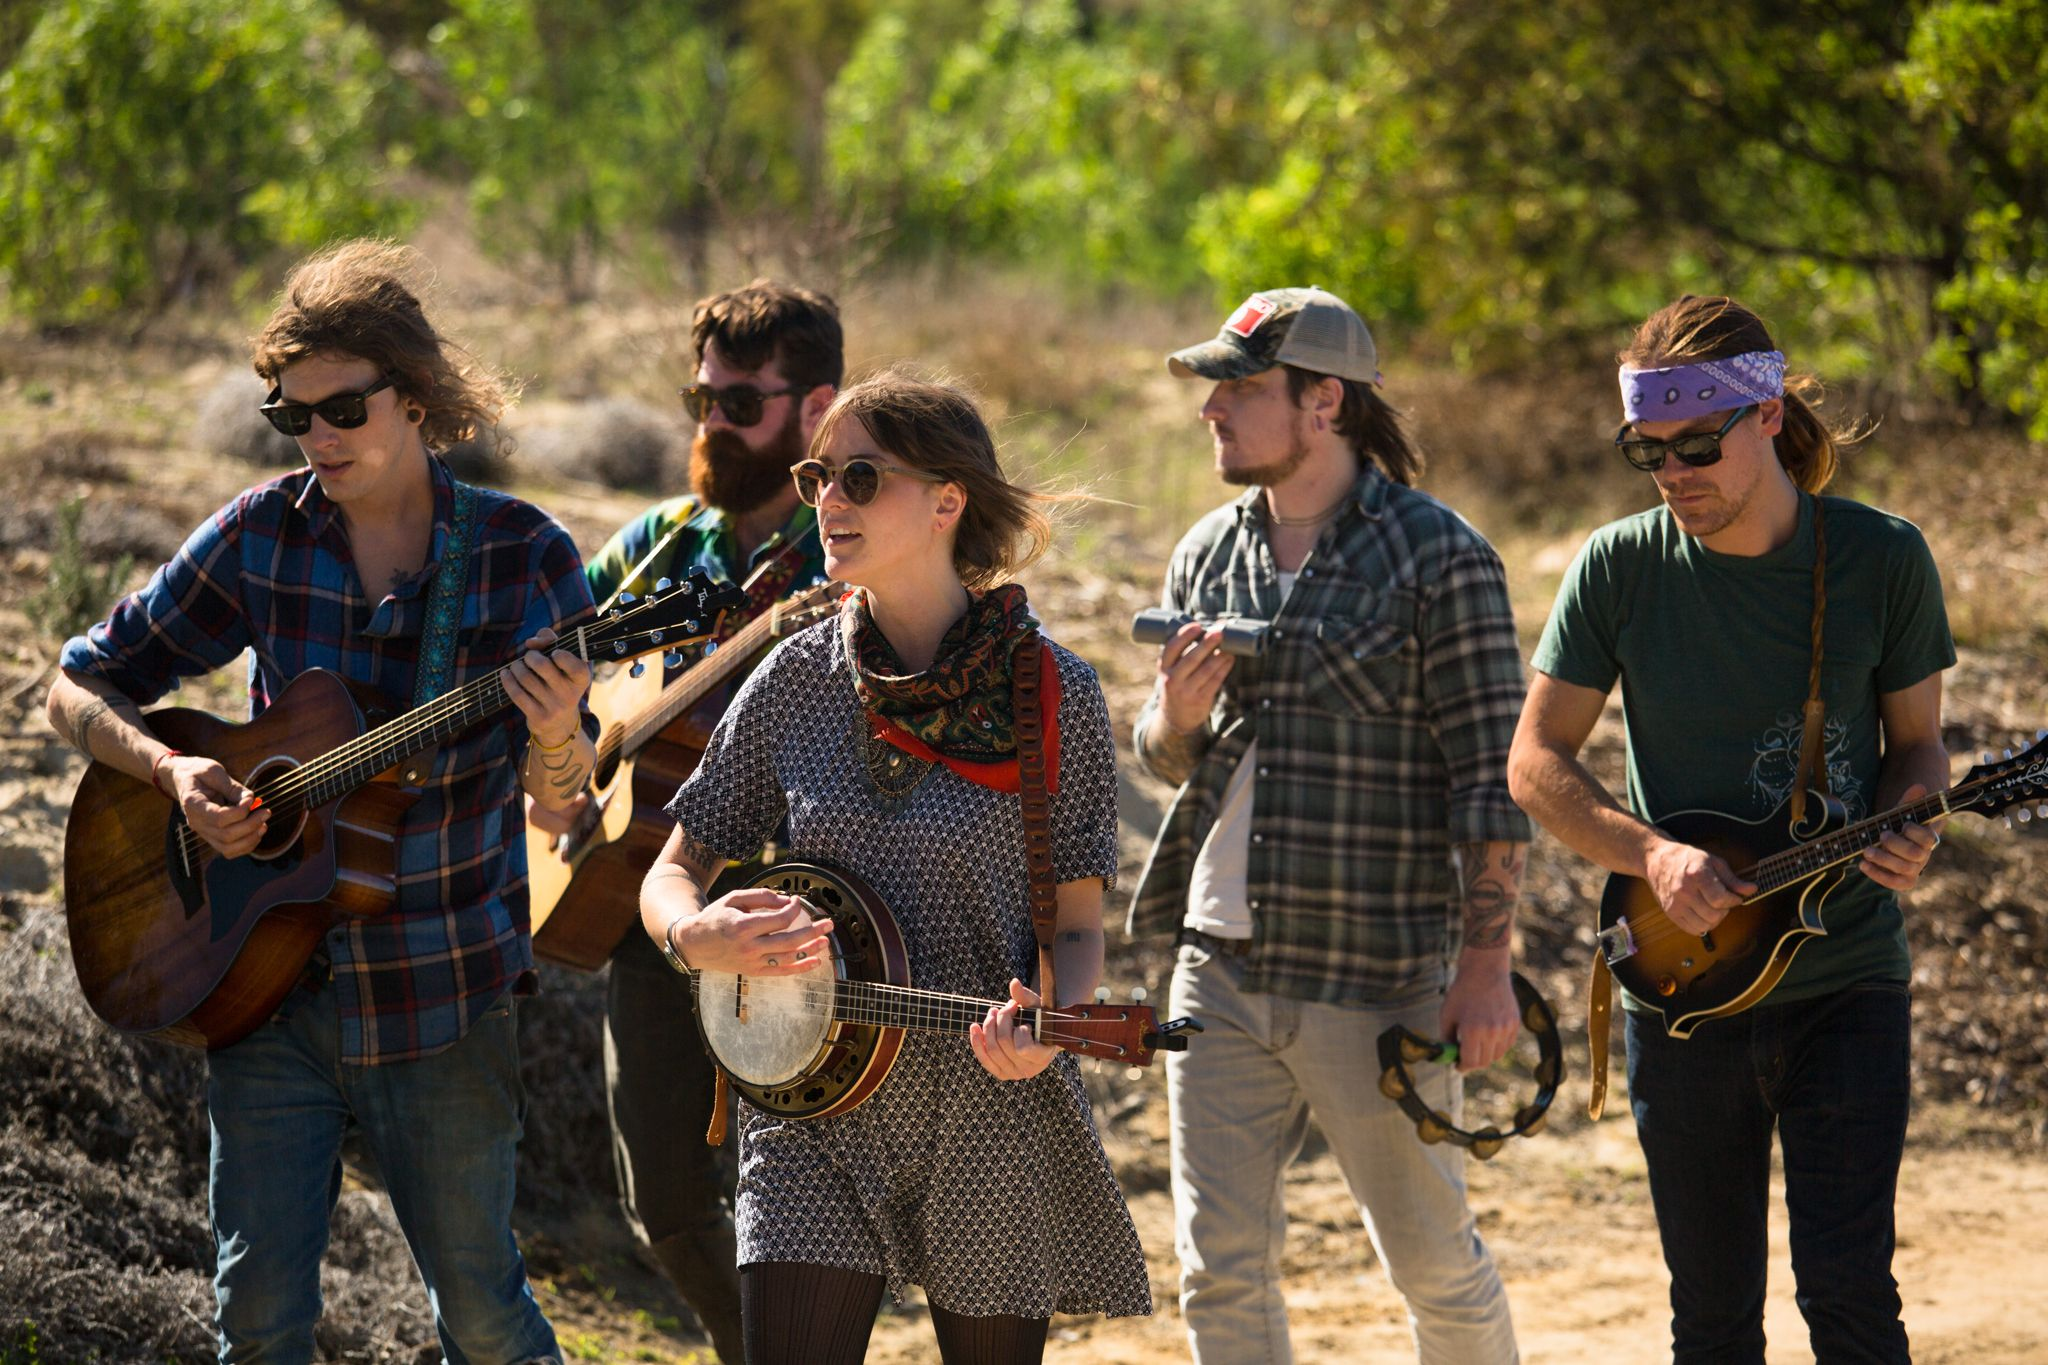 Coral Bells, music group, performing in the Food Forest.